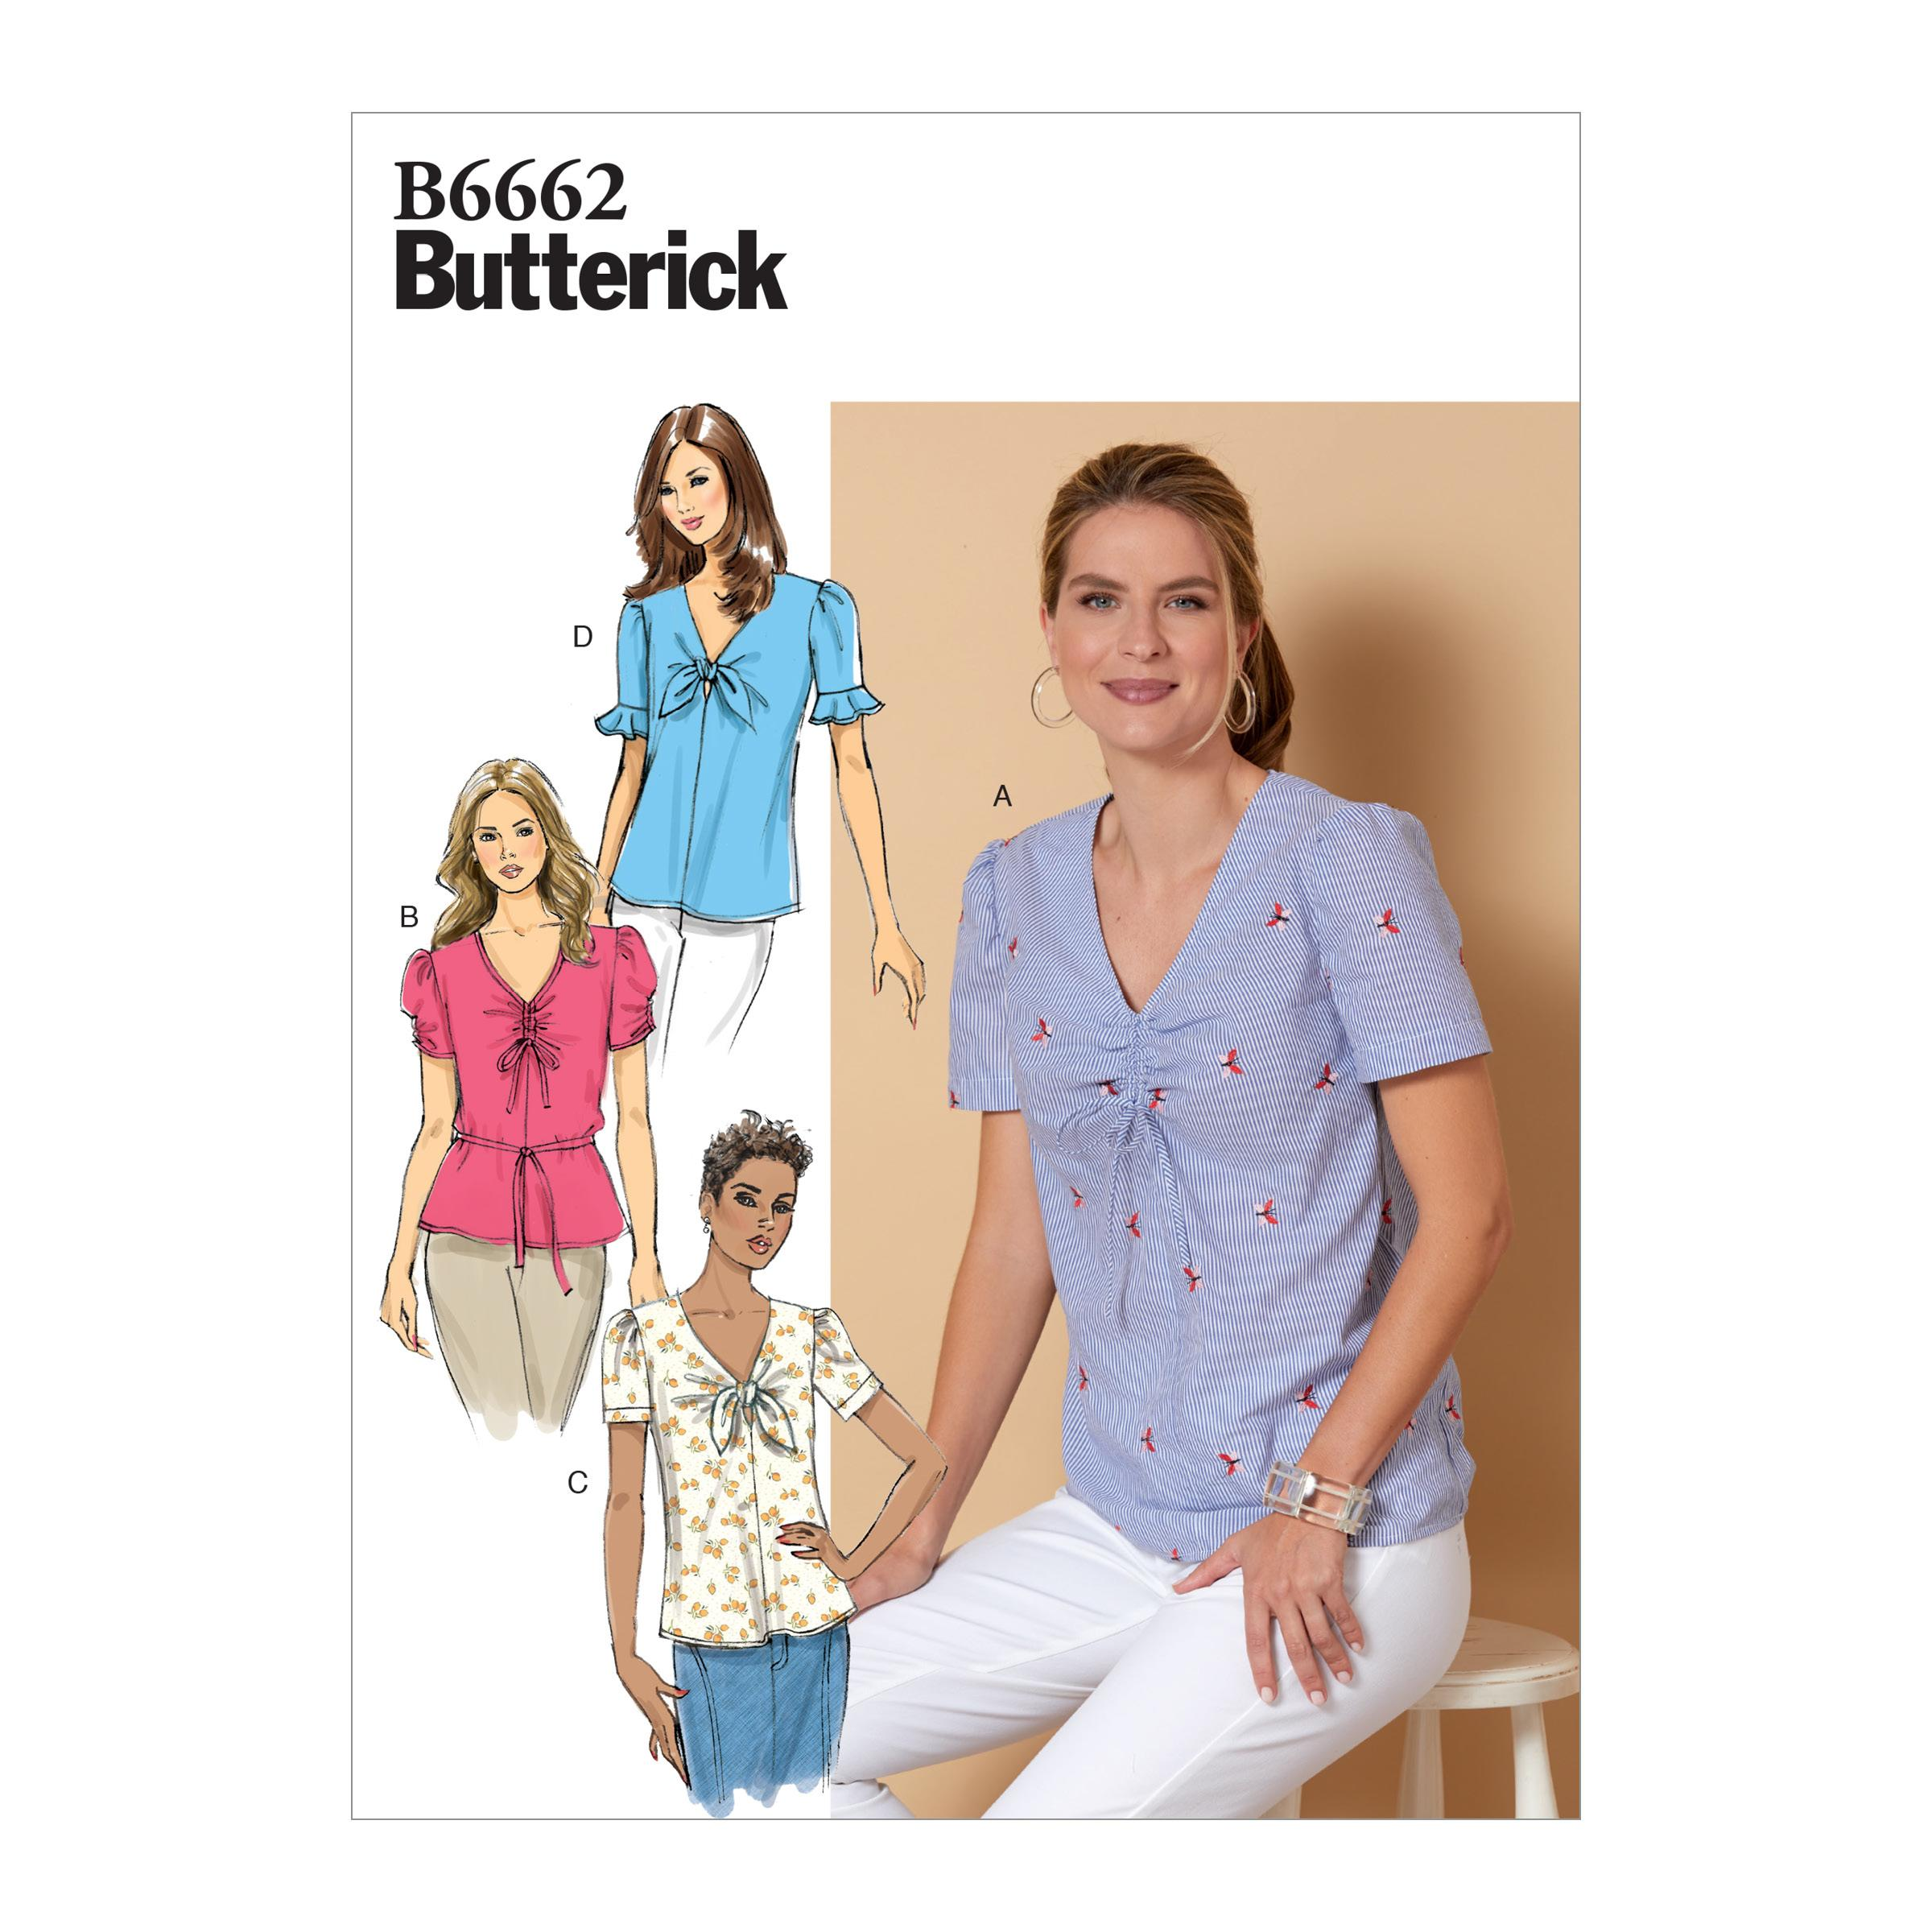 Butterick B6662 Misses' Top and Tie